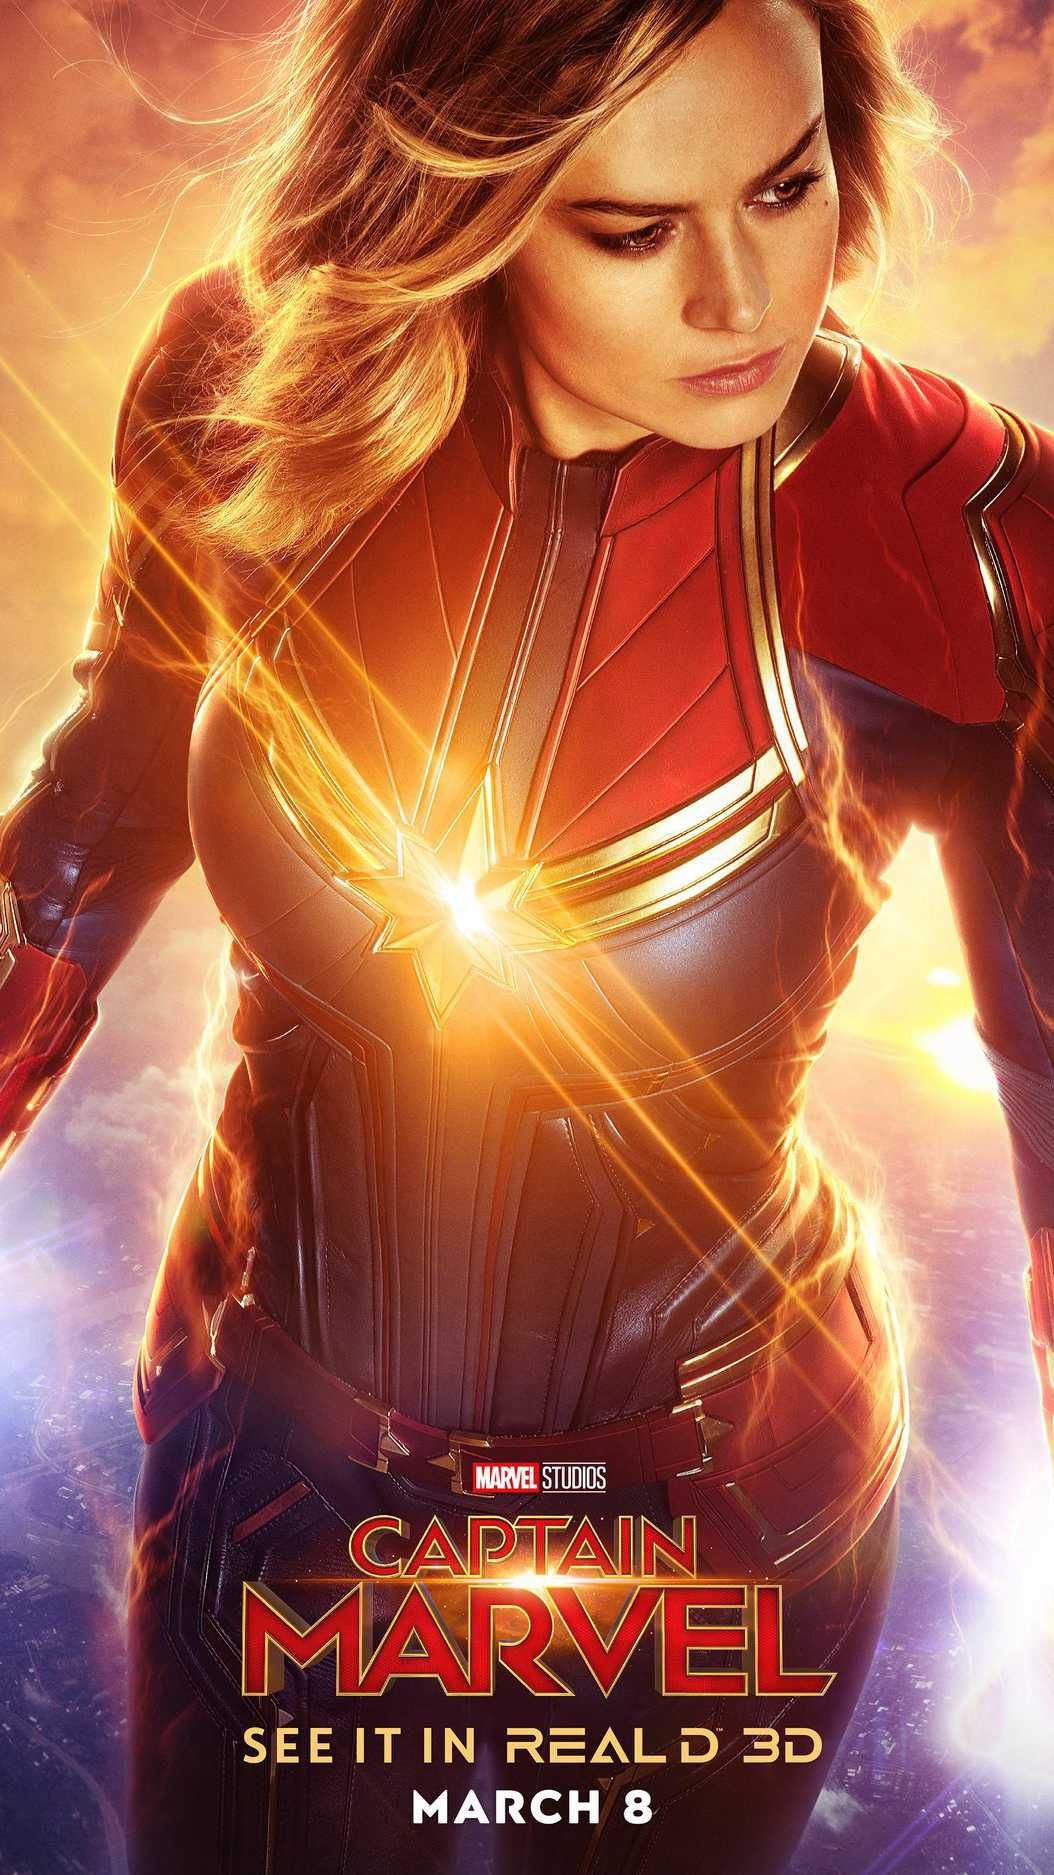 Captain Marvel Hd Poster Iphone Wallpaper In 2020 Captain Marvel Marvel Marvel Phone Wallpaper